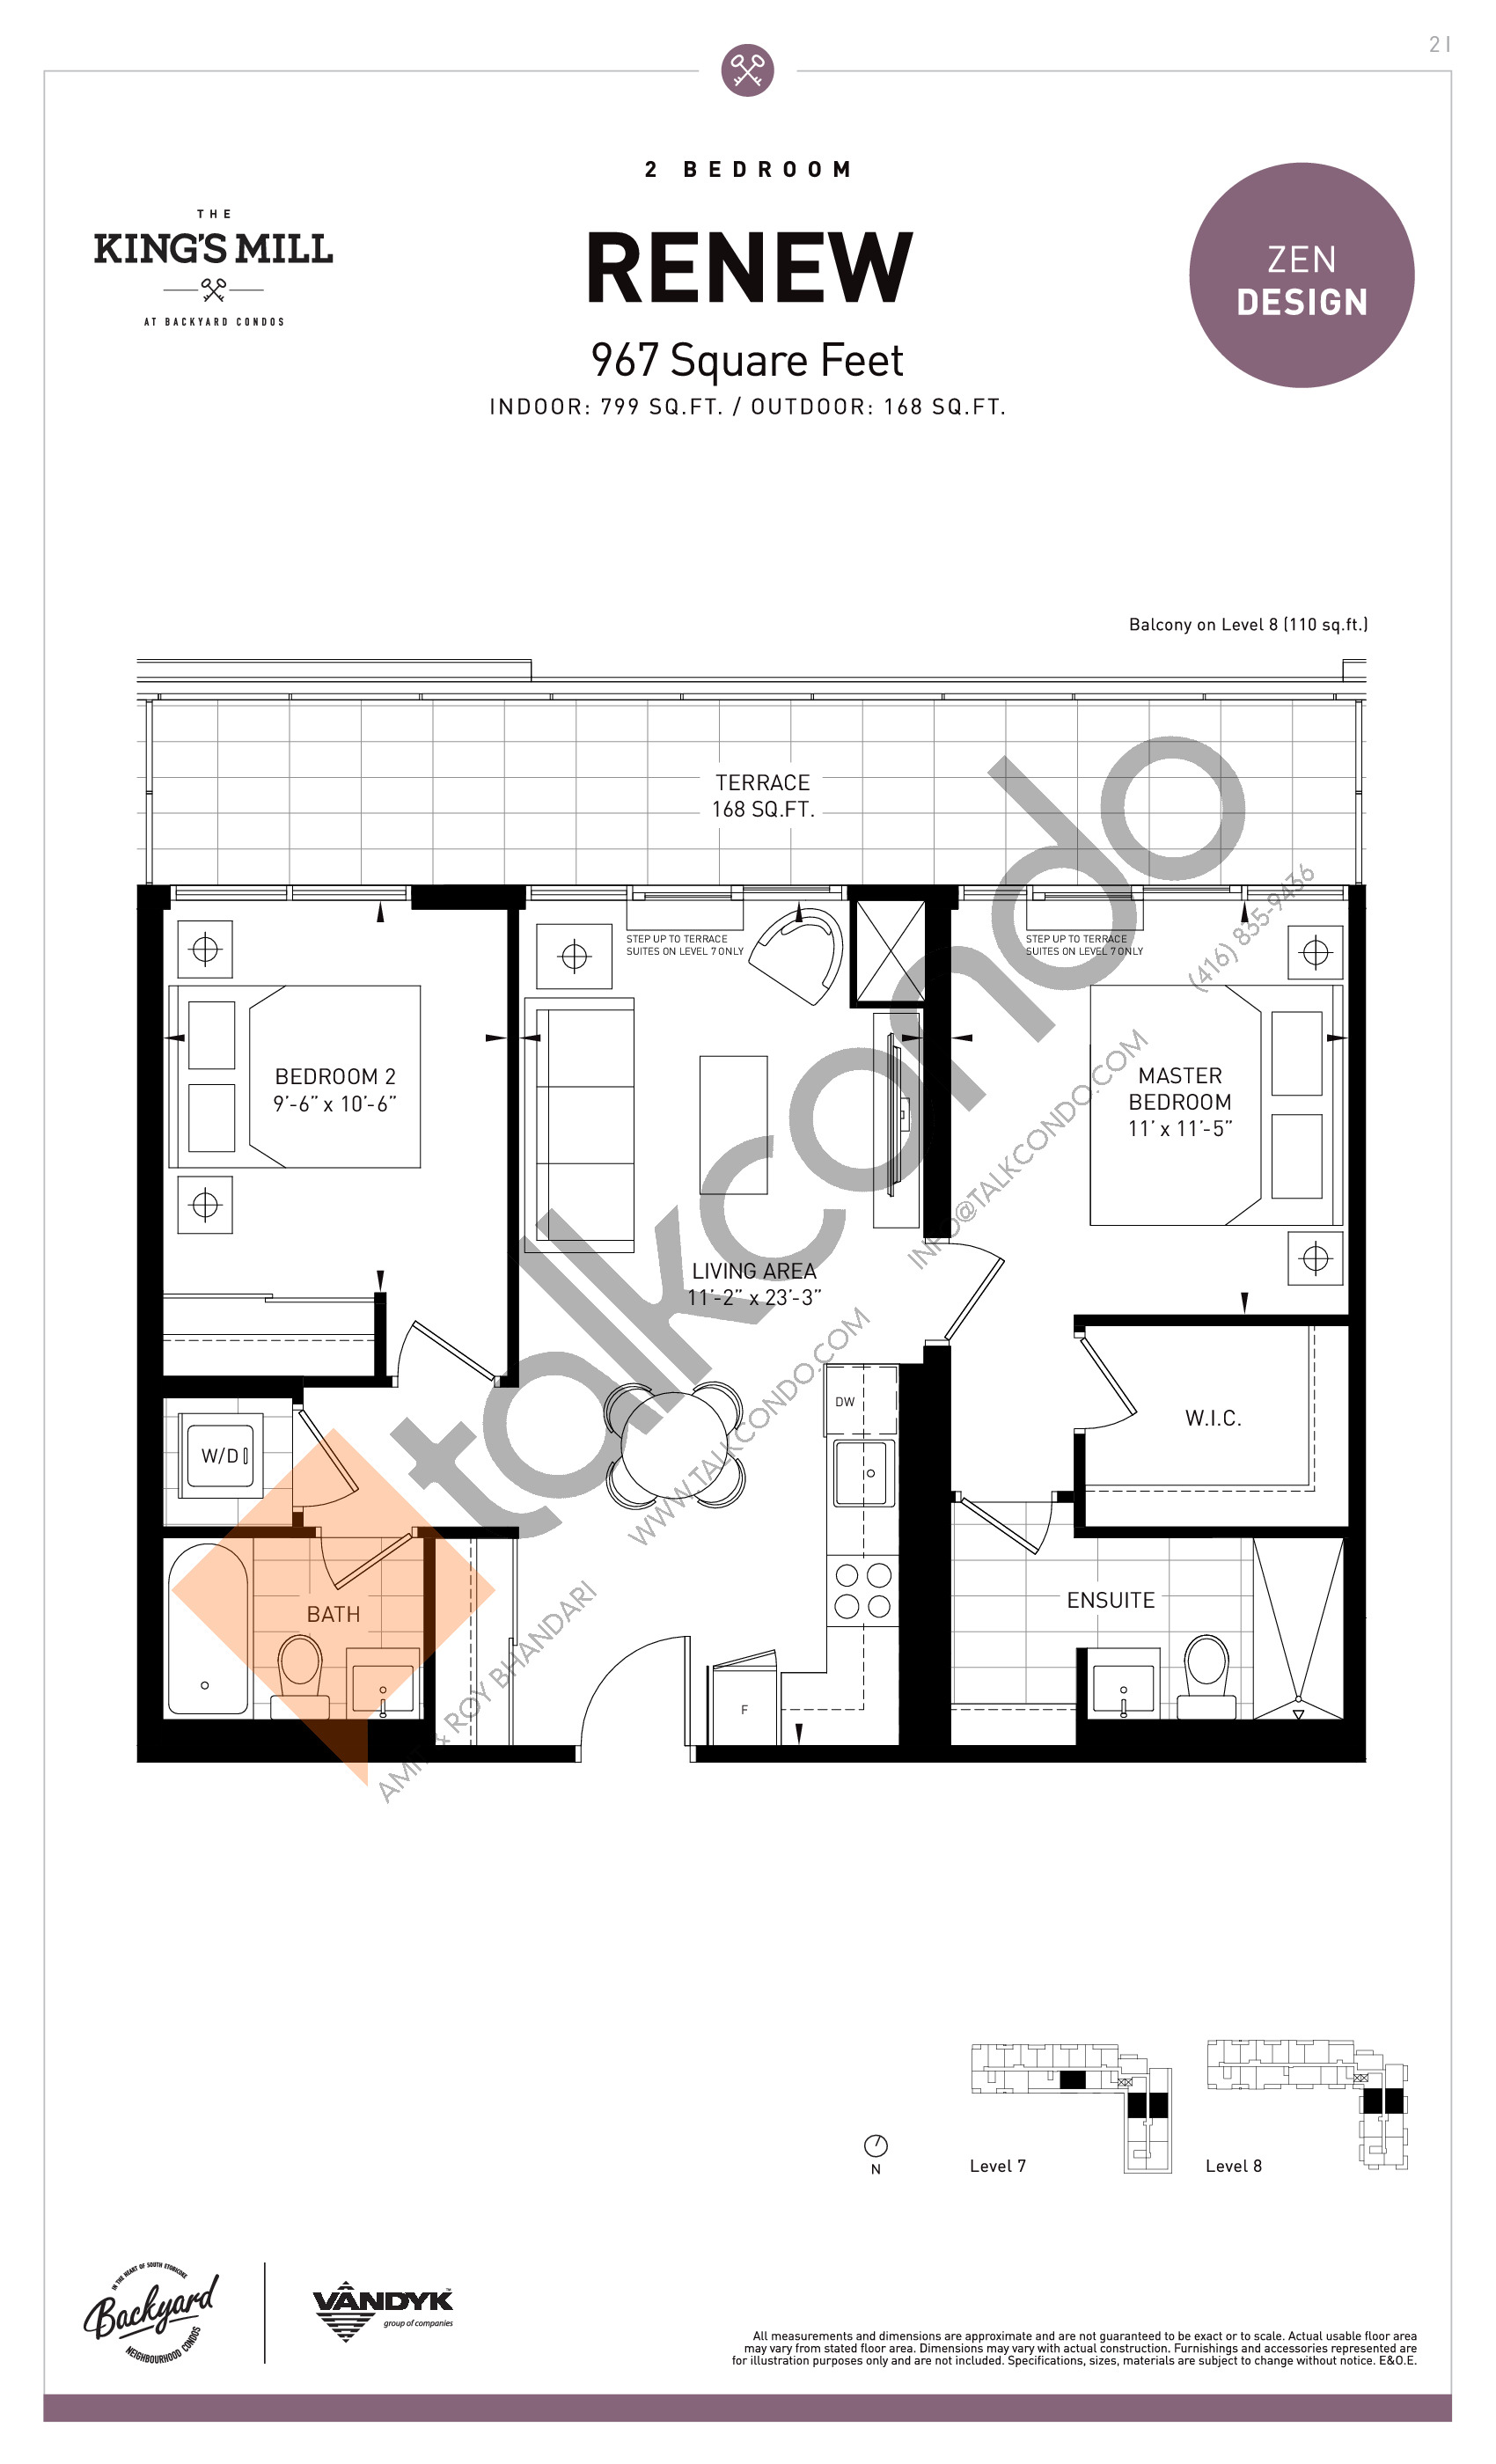 Renew Floor Plan at The King's Mill Condos - 799 sq.ft